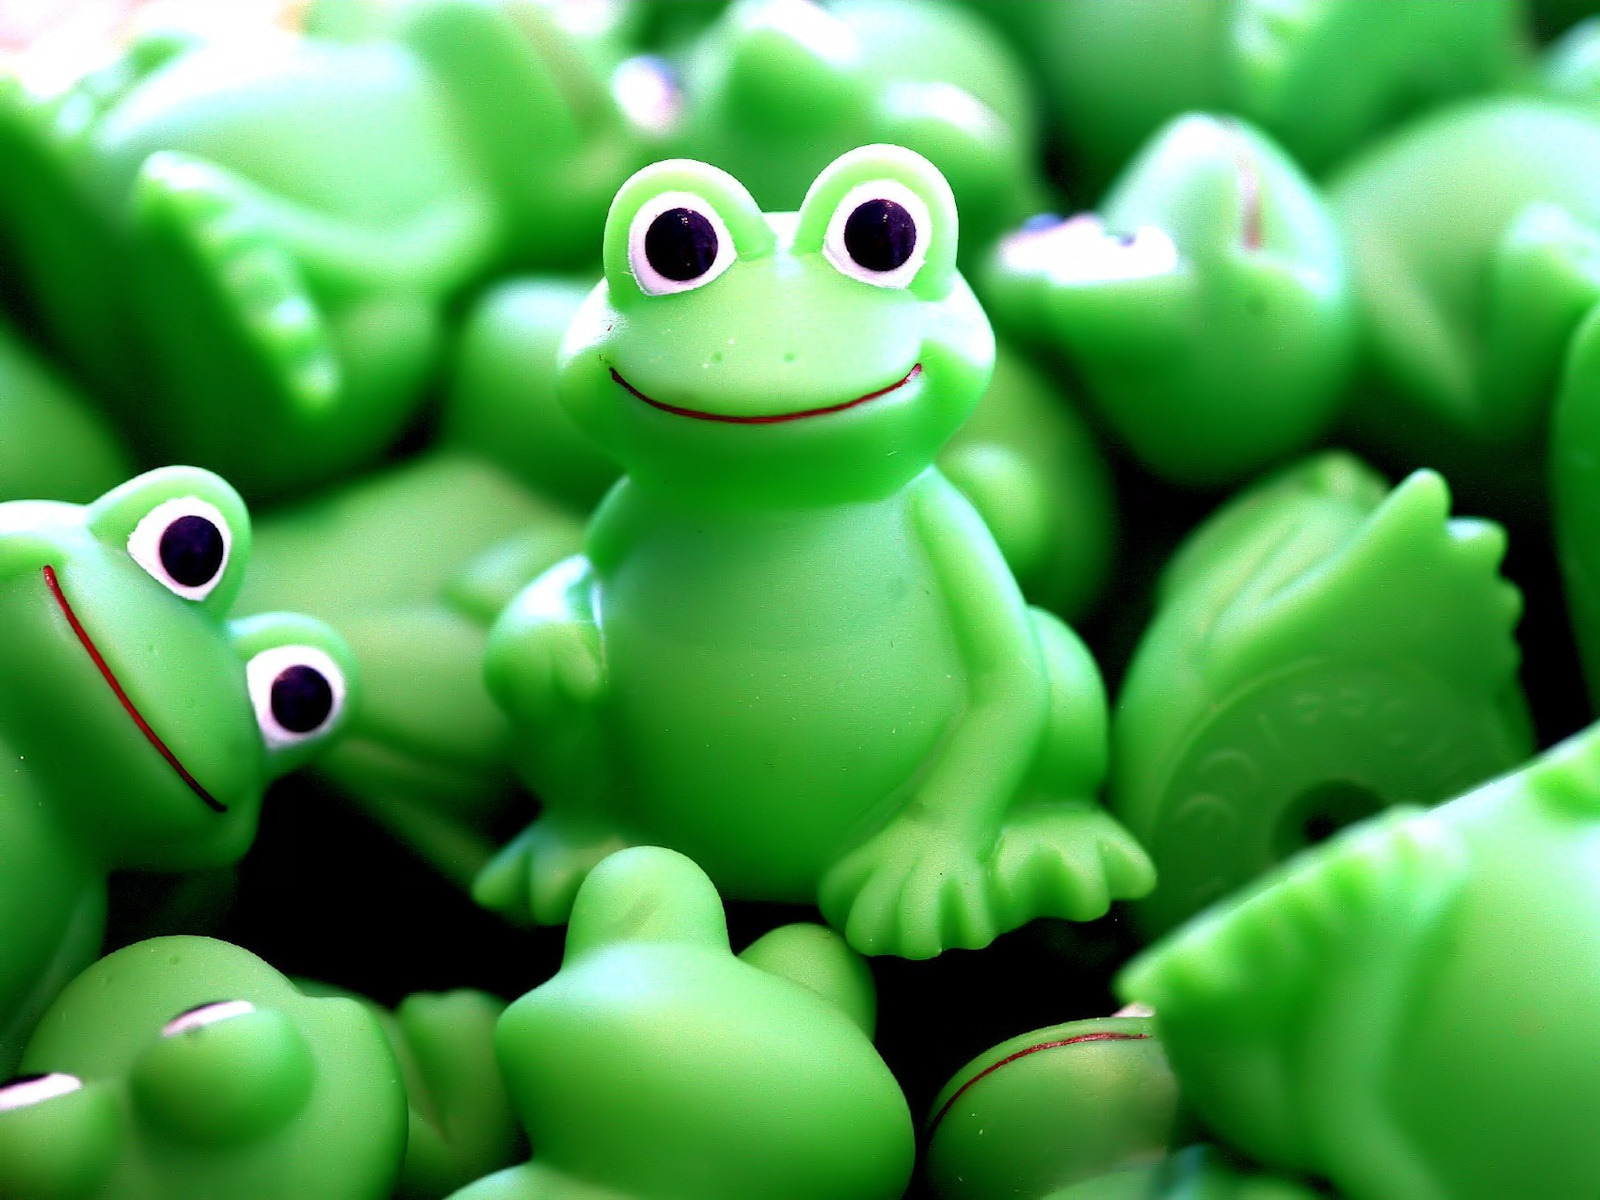 Crazy frogs 1600 x 1200 download close